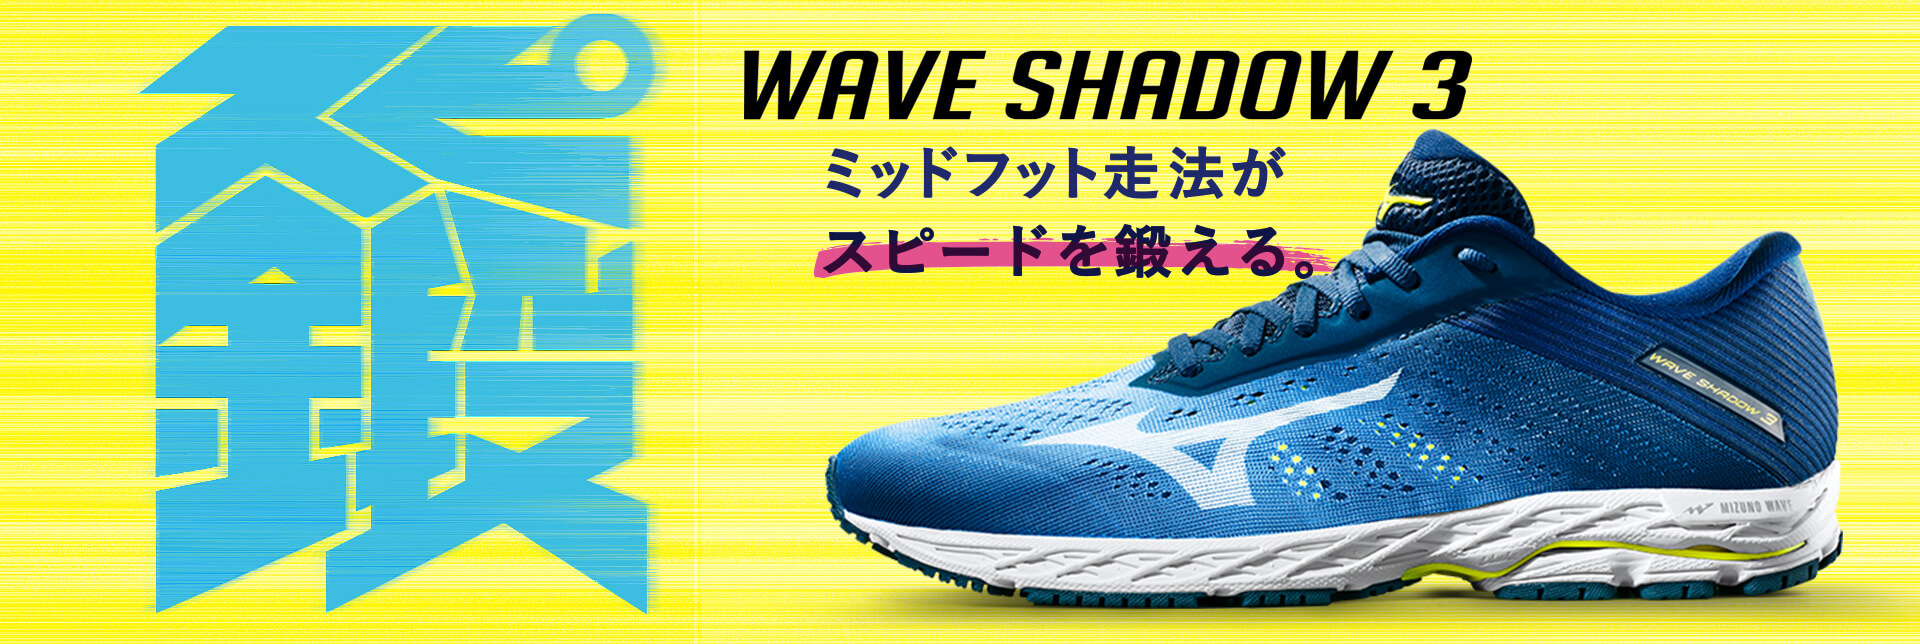 WAVE SHADOW 3